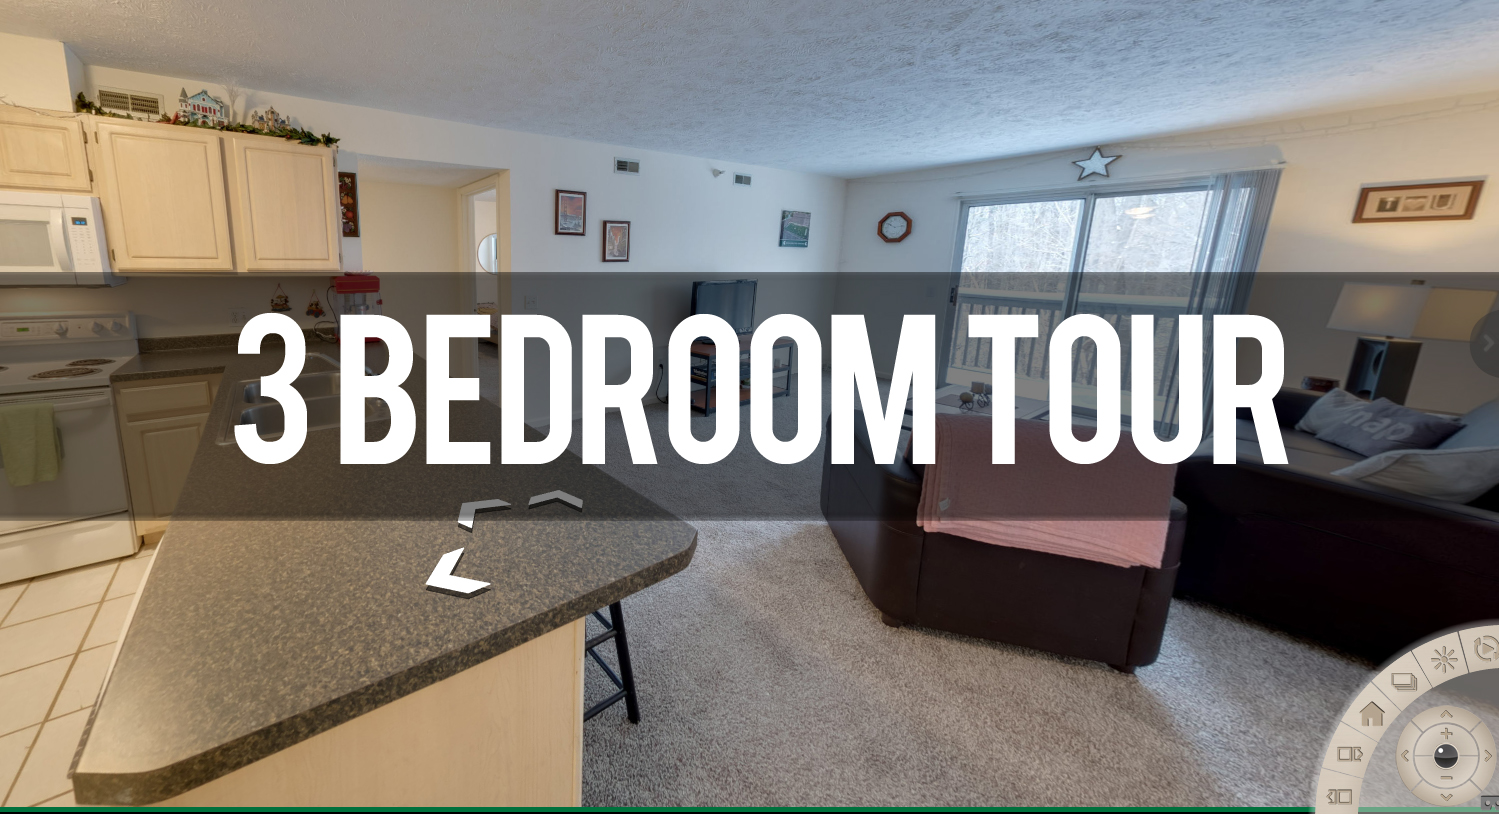 Virtual Tour of 3 Bedroom Apartment at Park Place Apartments